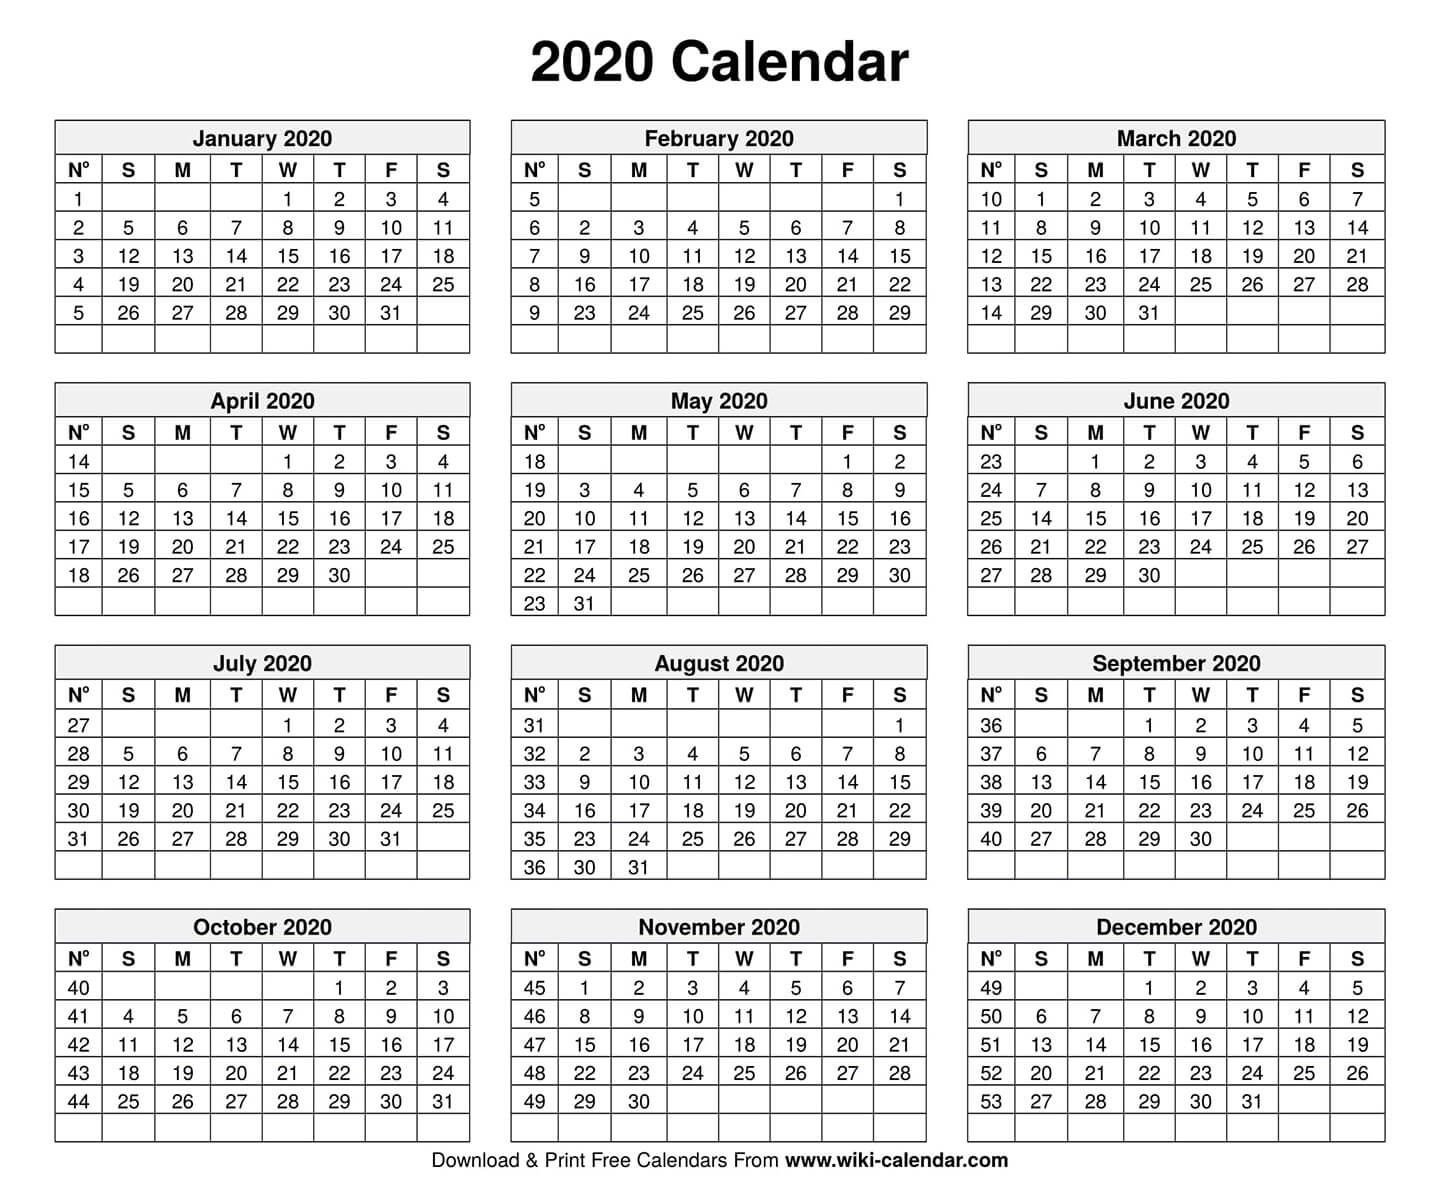 Free Printable Year 2020 Calendar  2020 Calendar With Holidays Printable One Page